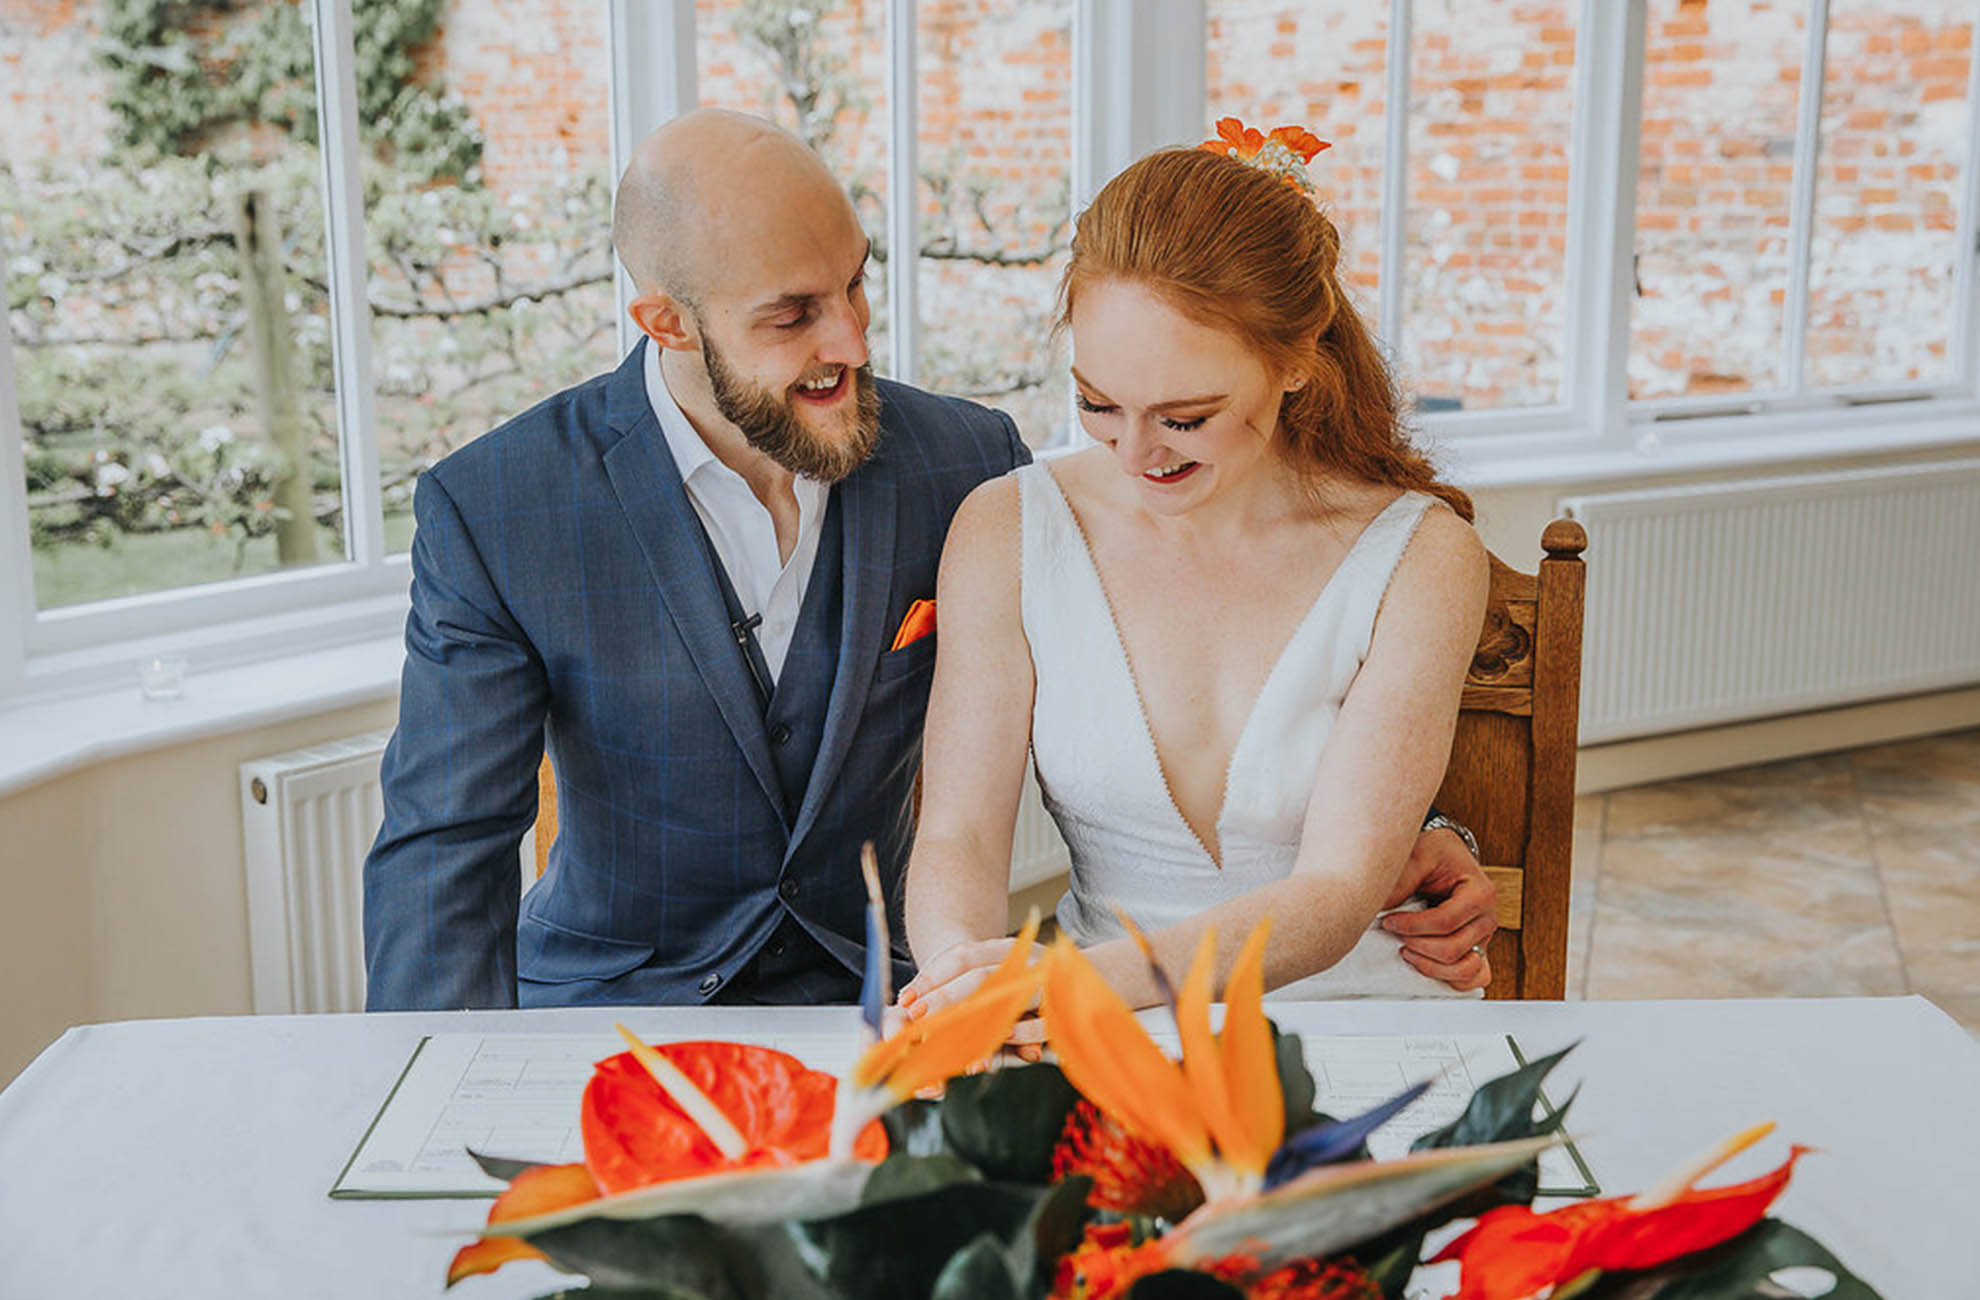 The newlyweds sign the wedding register in the Glasshouse at Combermere Abbey